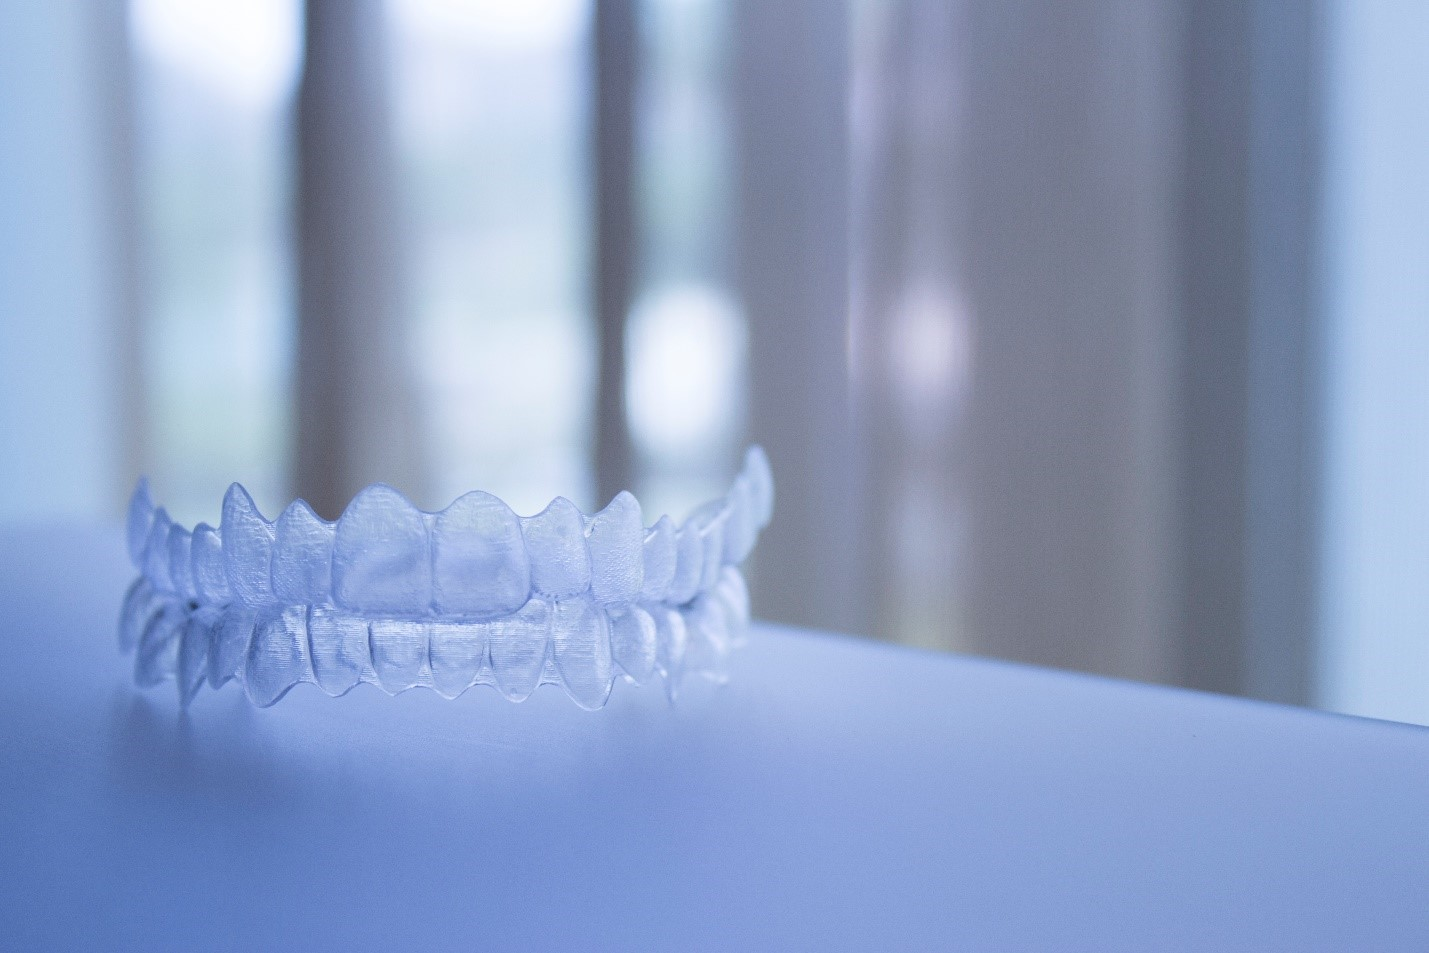 Invisible braces on a white tabletop